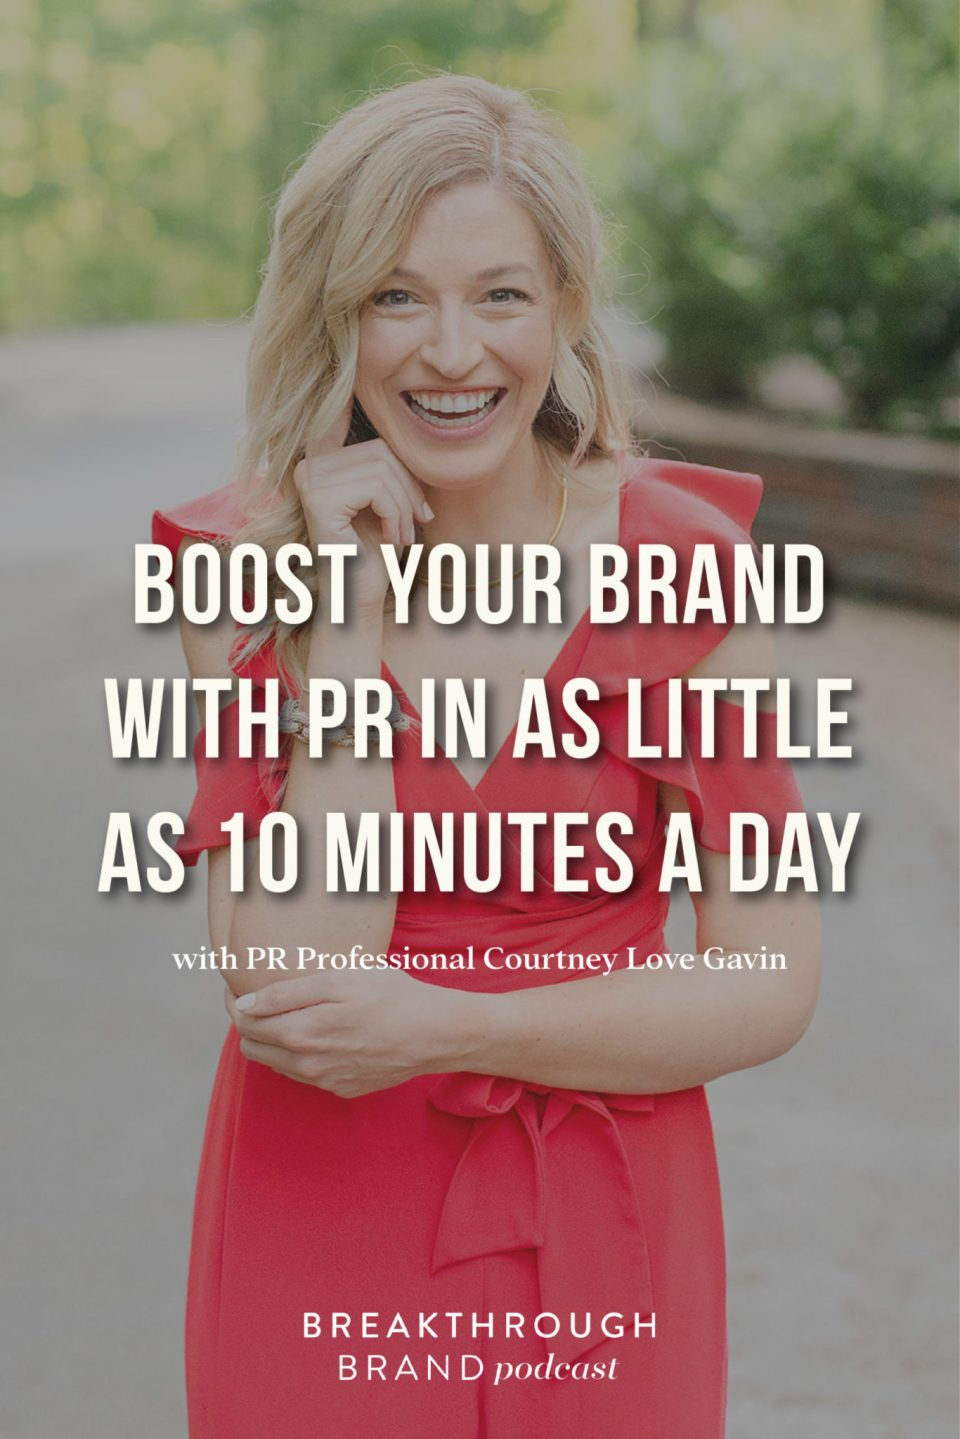 Hear how to boost your brand with PR in as little as 10 minutes a day with Courtney Love Gavin's interview on the Breakthrough Brand Podcast.